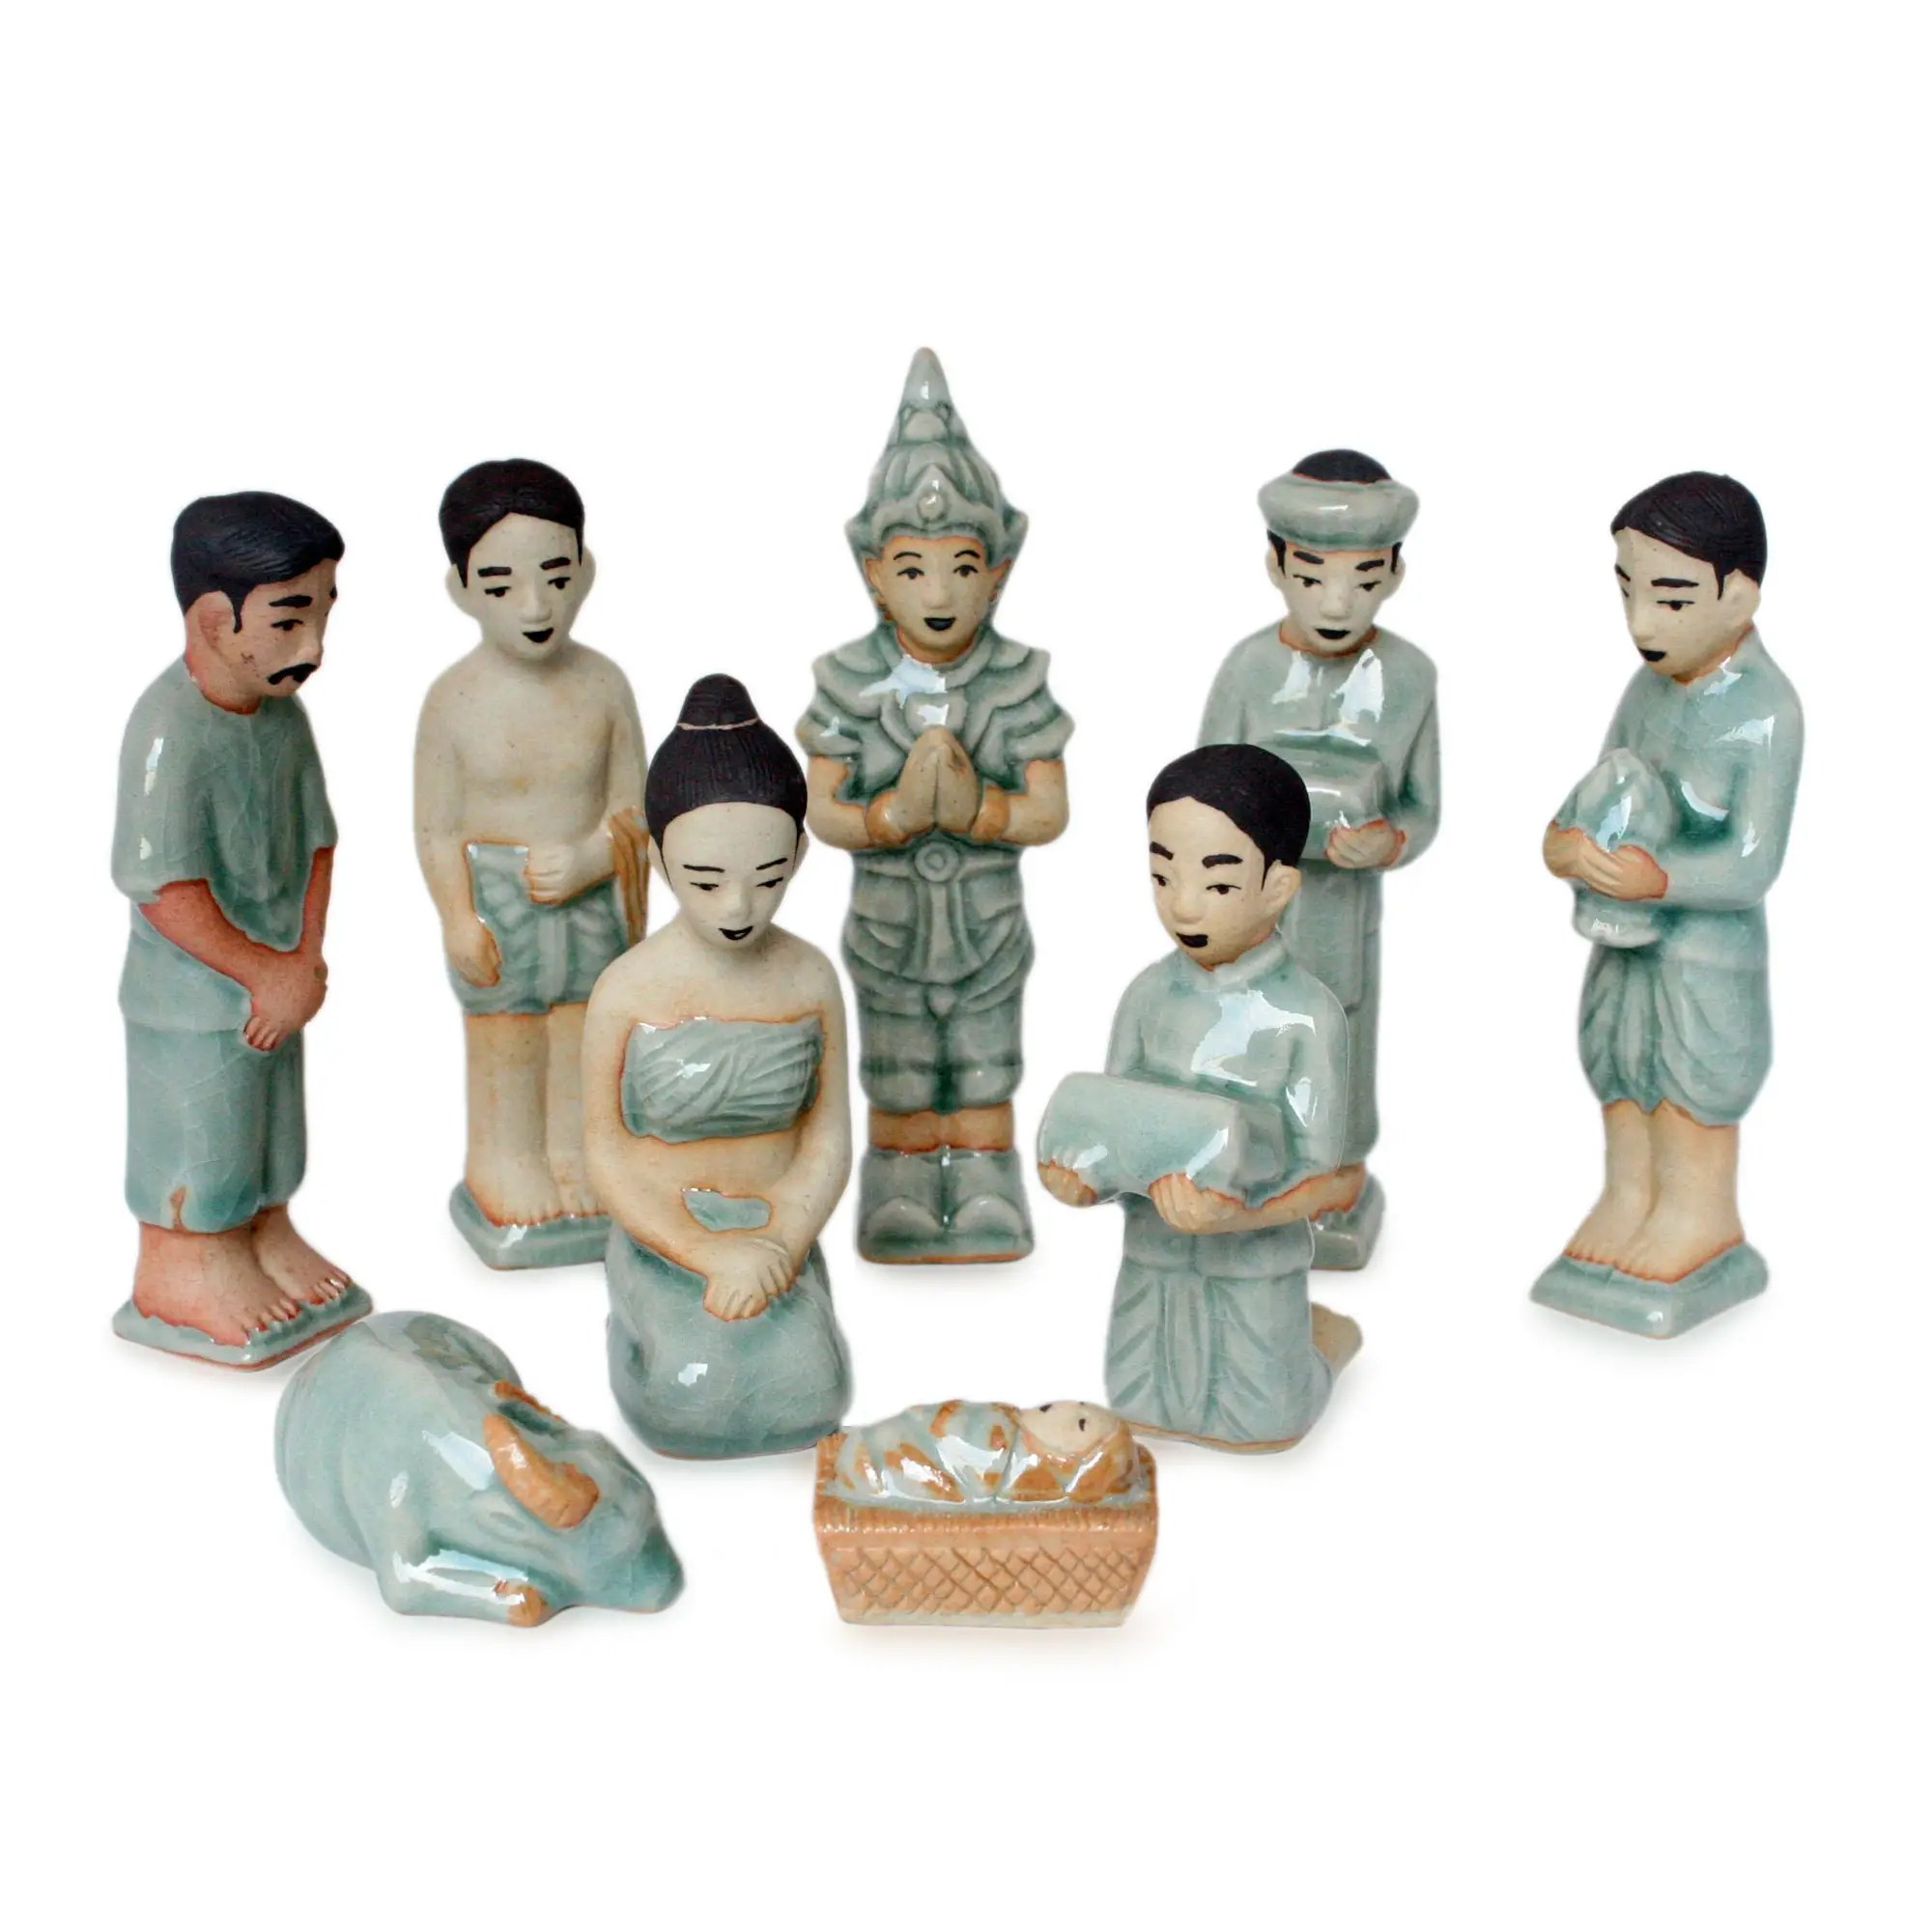 Unicef UK Market Celadon Ceramic Nativity Scene Set Of